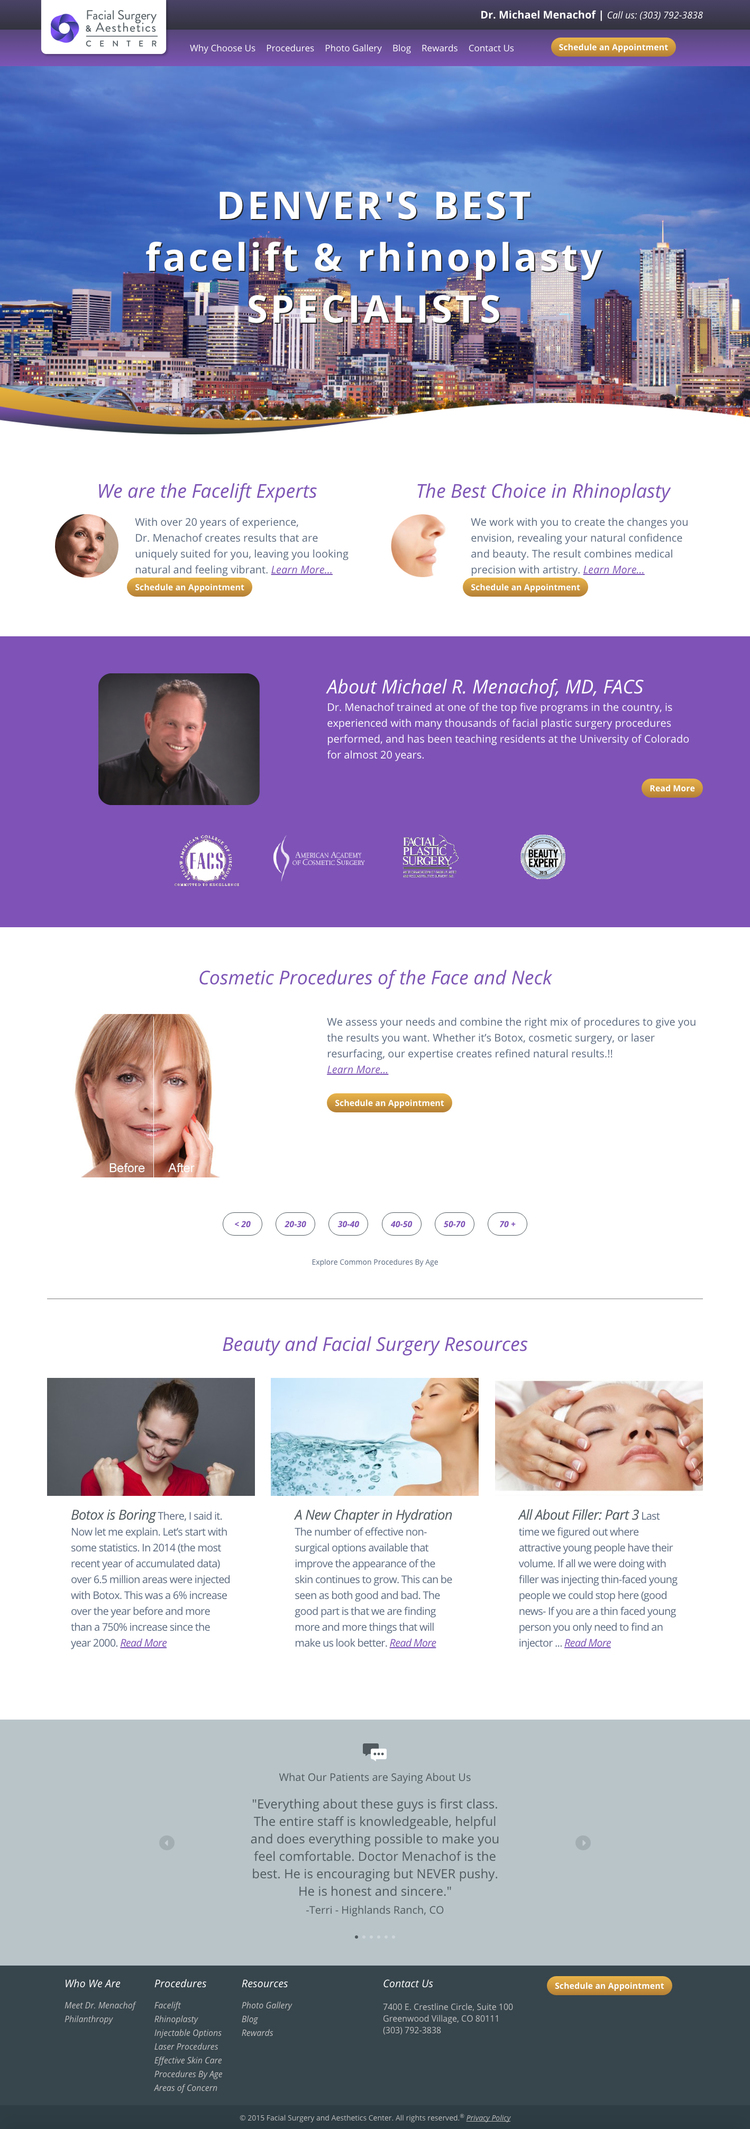 Facial Surgery & Aesthetics Center Website.jpeg